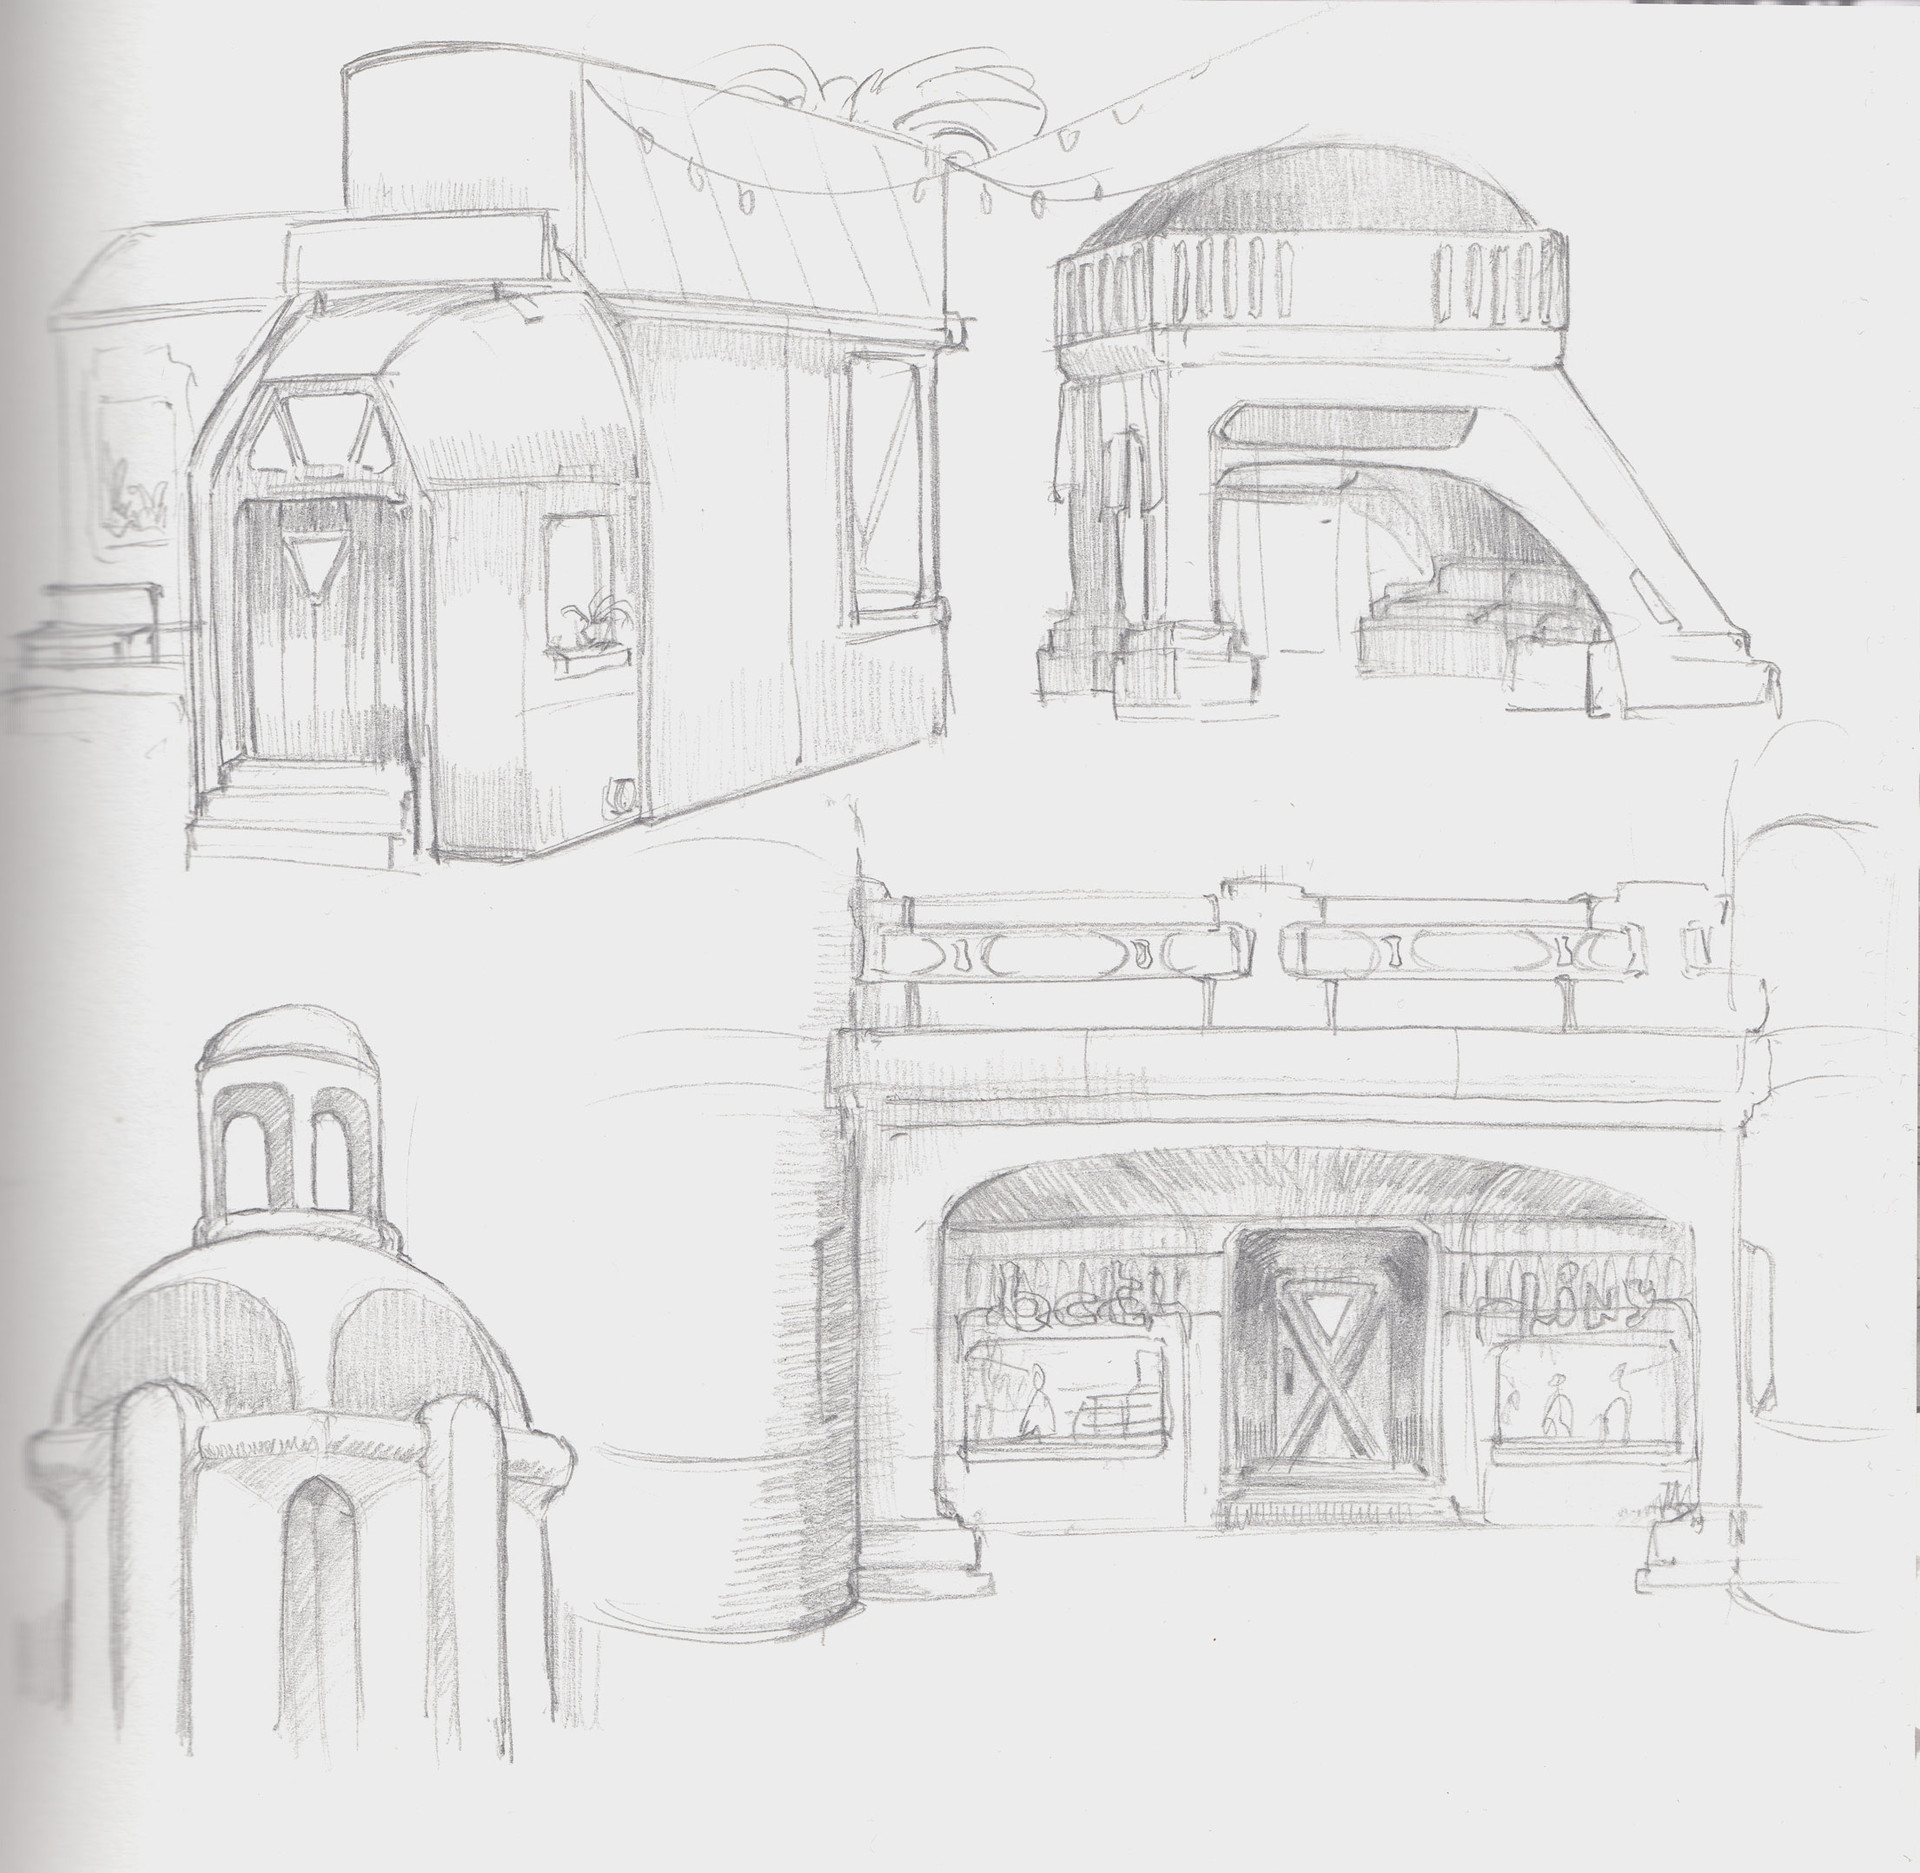 White town architecture sketches